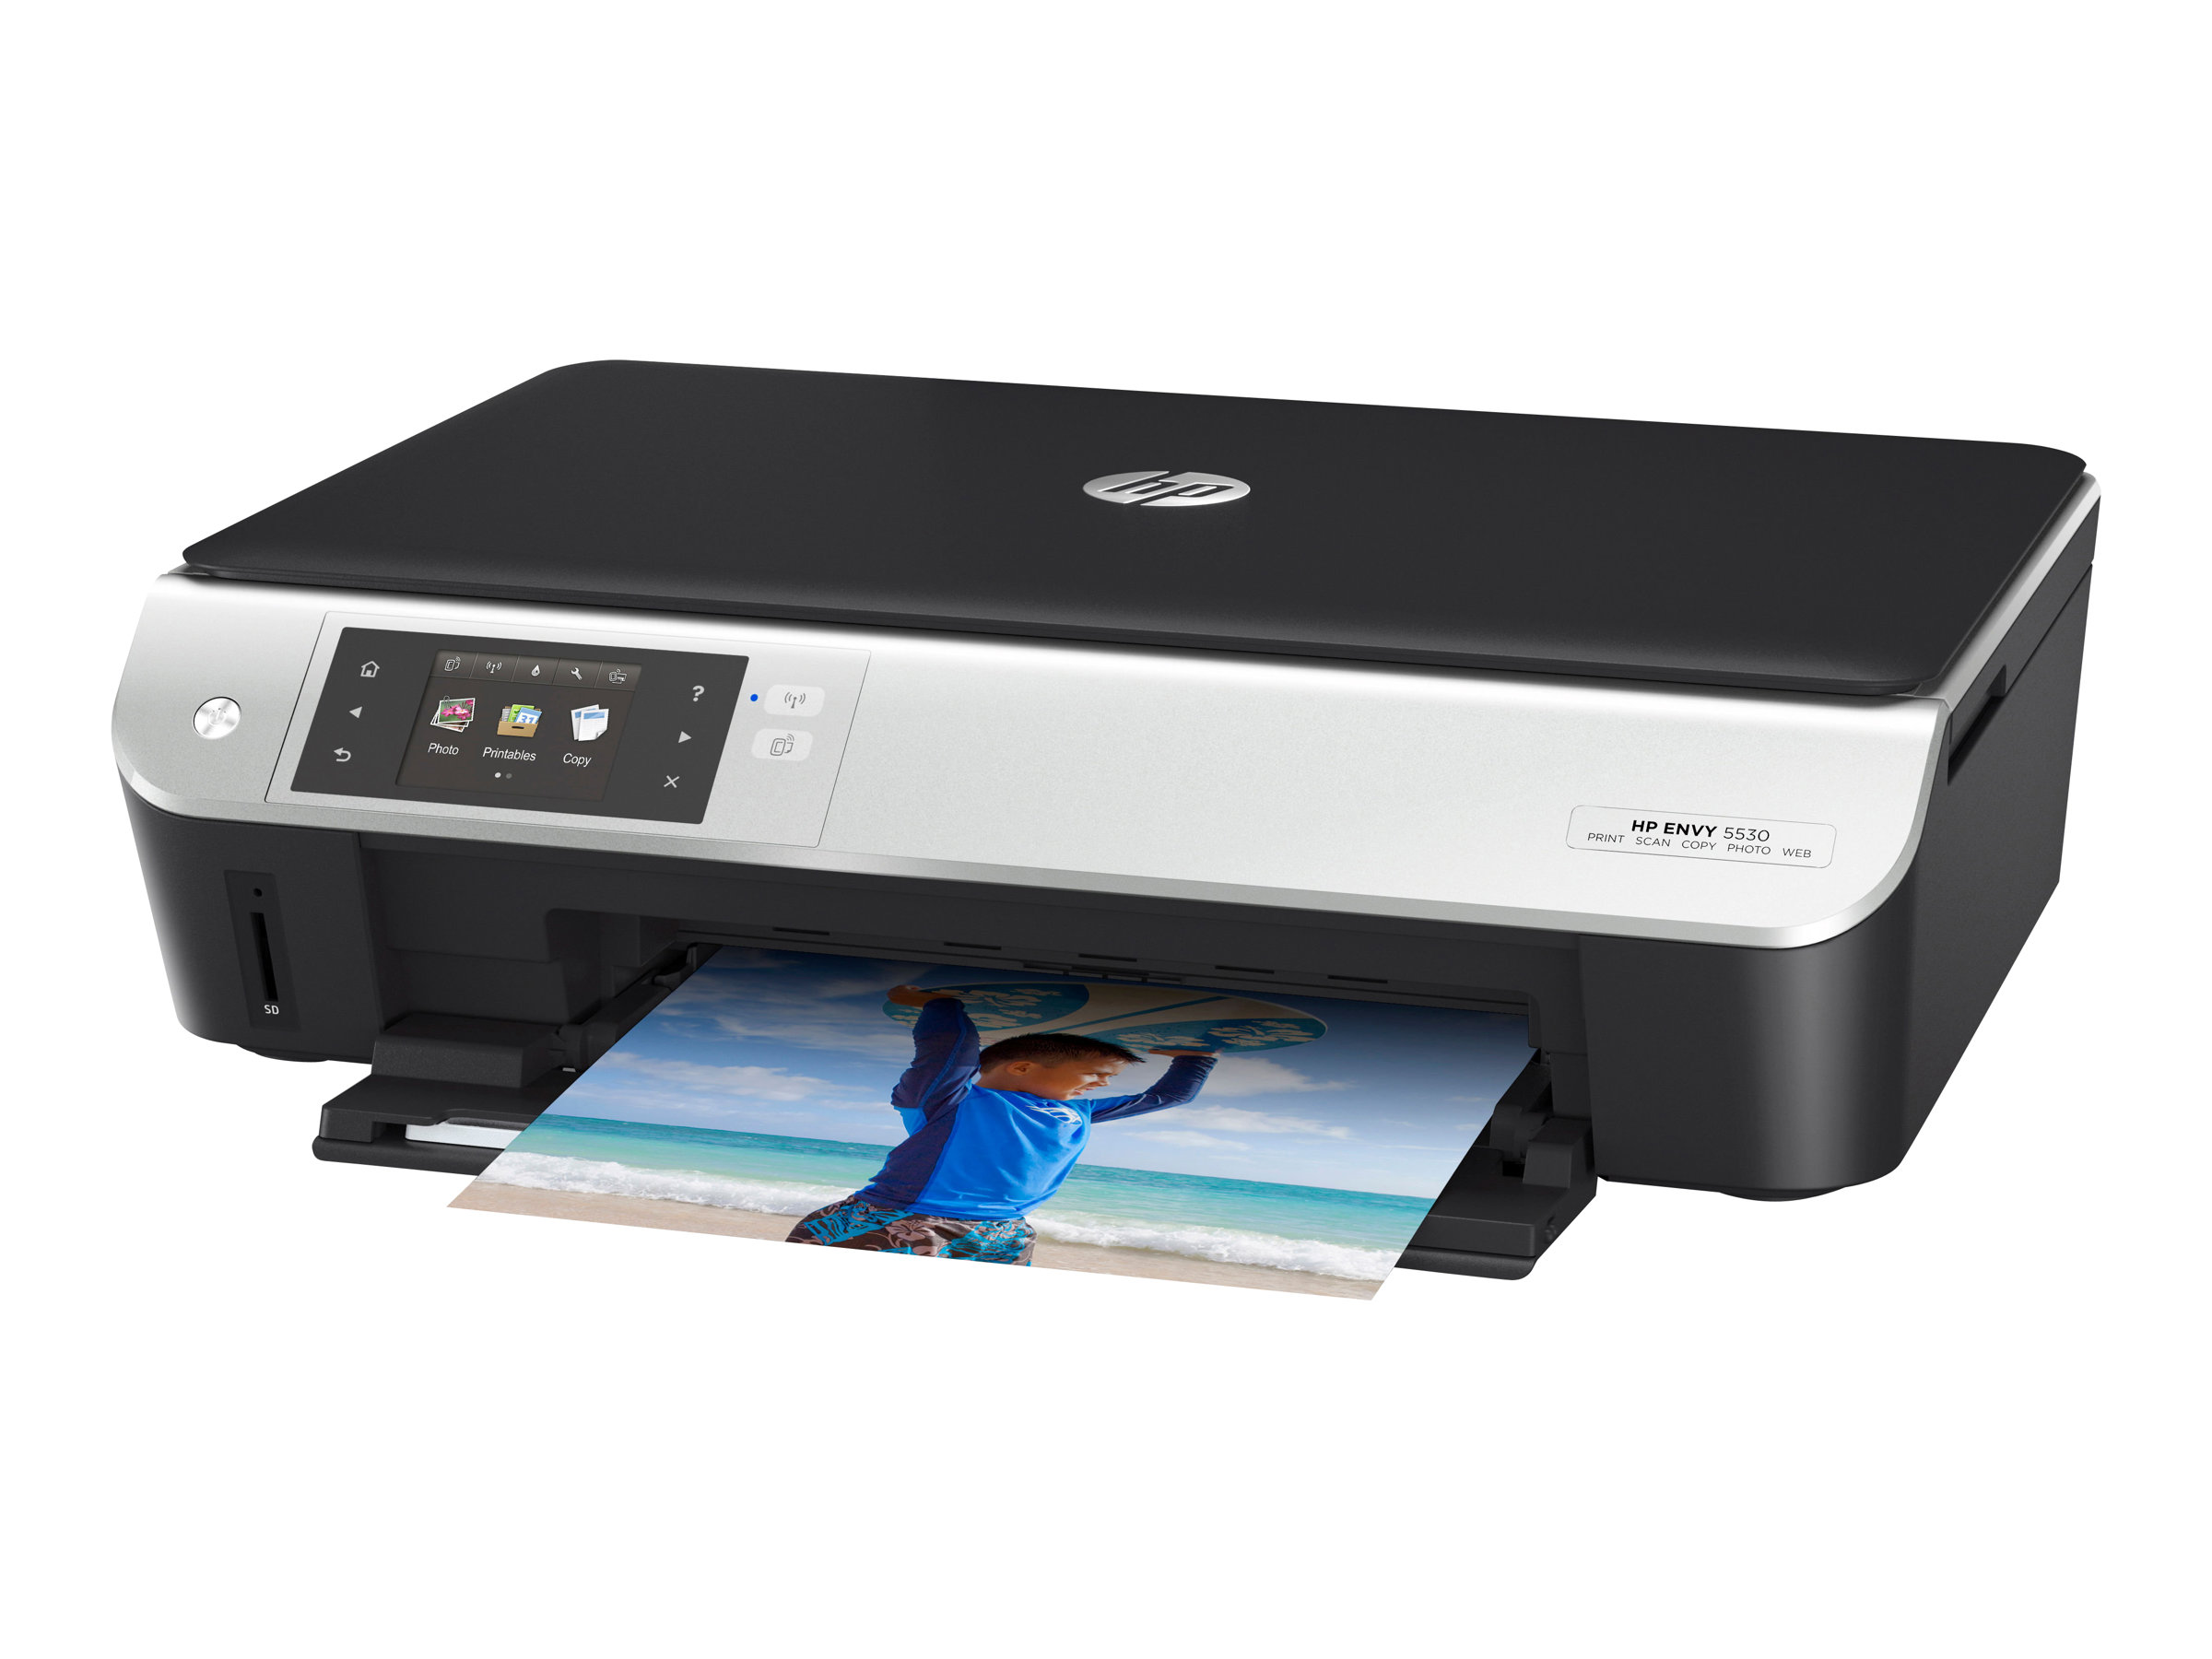 HP Envy 5530 e-All-in-One - Multifunktionsdrucker - Farbe - Tintenstrahl - 216 x 297 mm (Original) - A4/Legal (Medien)